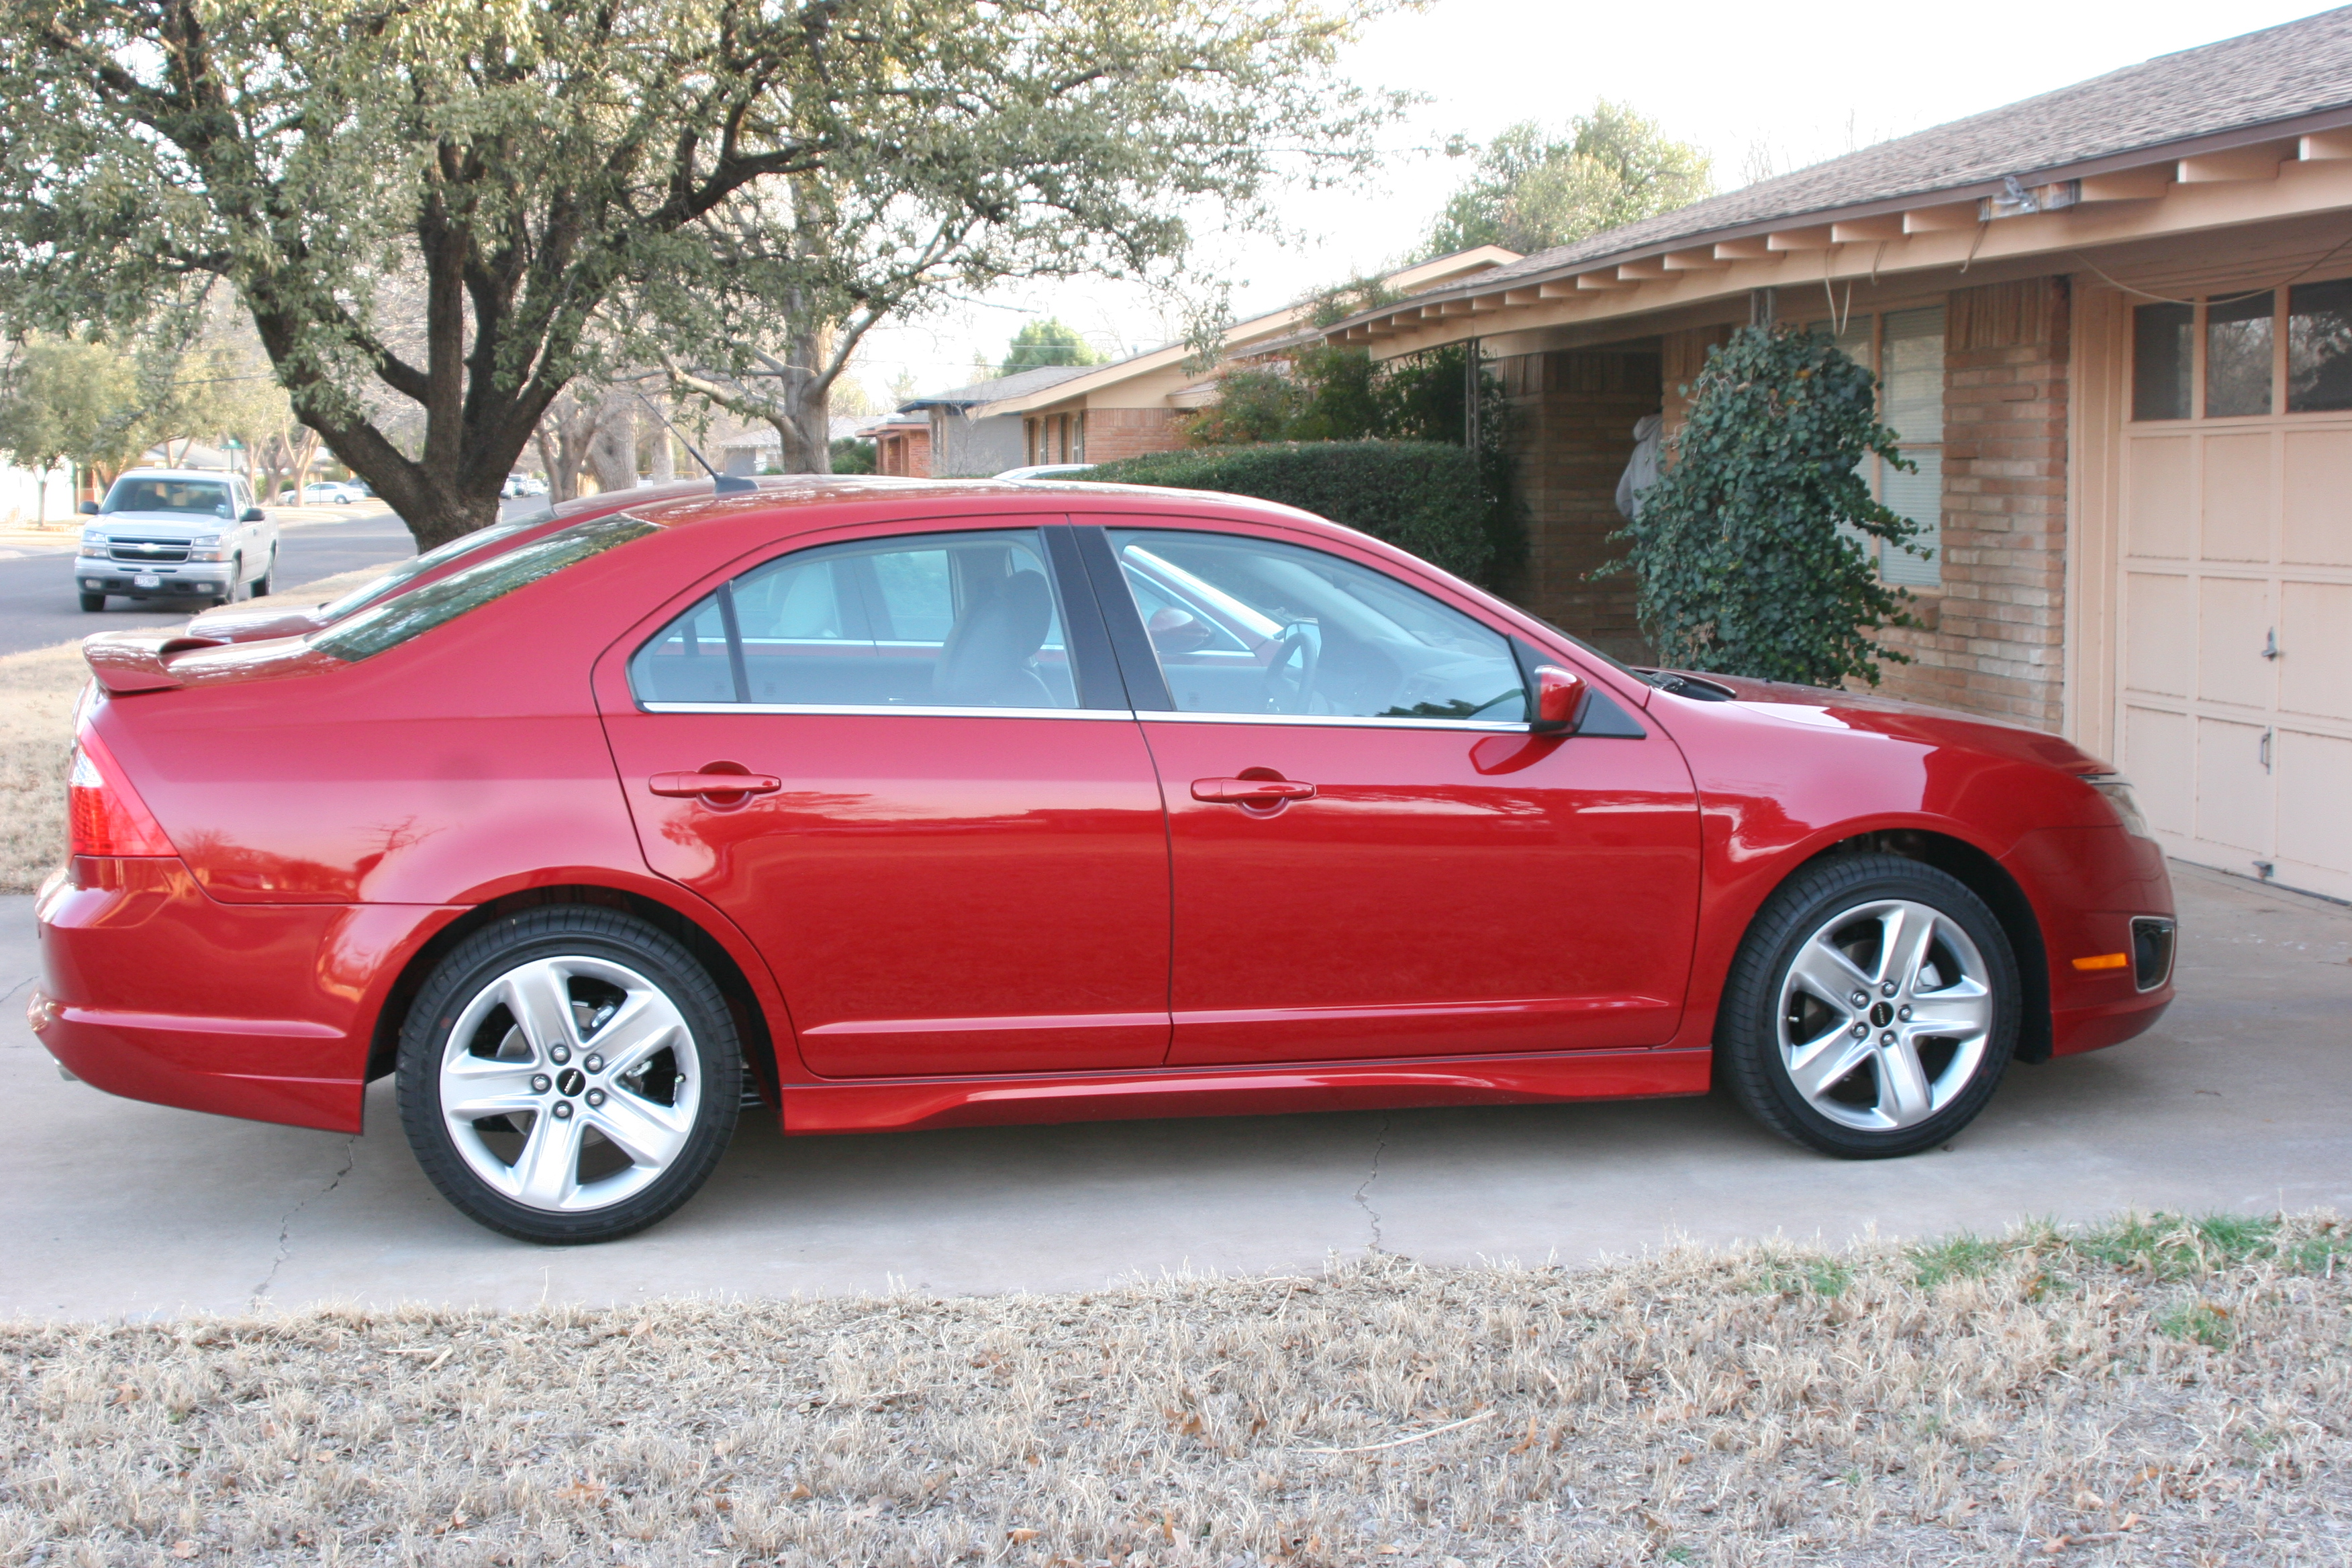 Sewell Ford Odessa >> My New BFF = 2010 Ford Fusion Sport | LONE STAR LIFER. my roots run deep